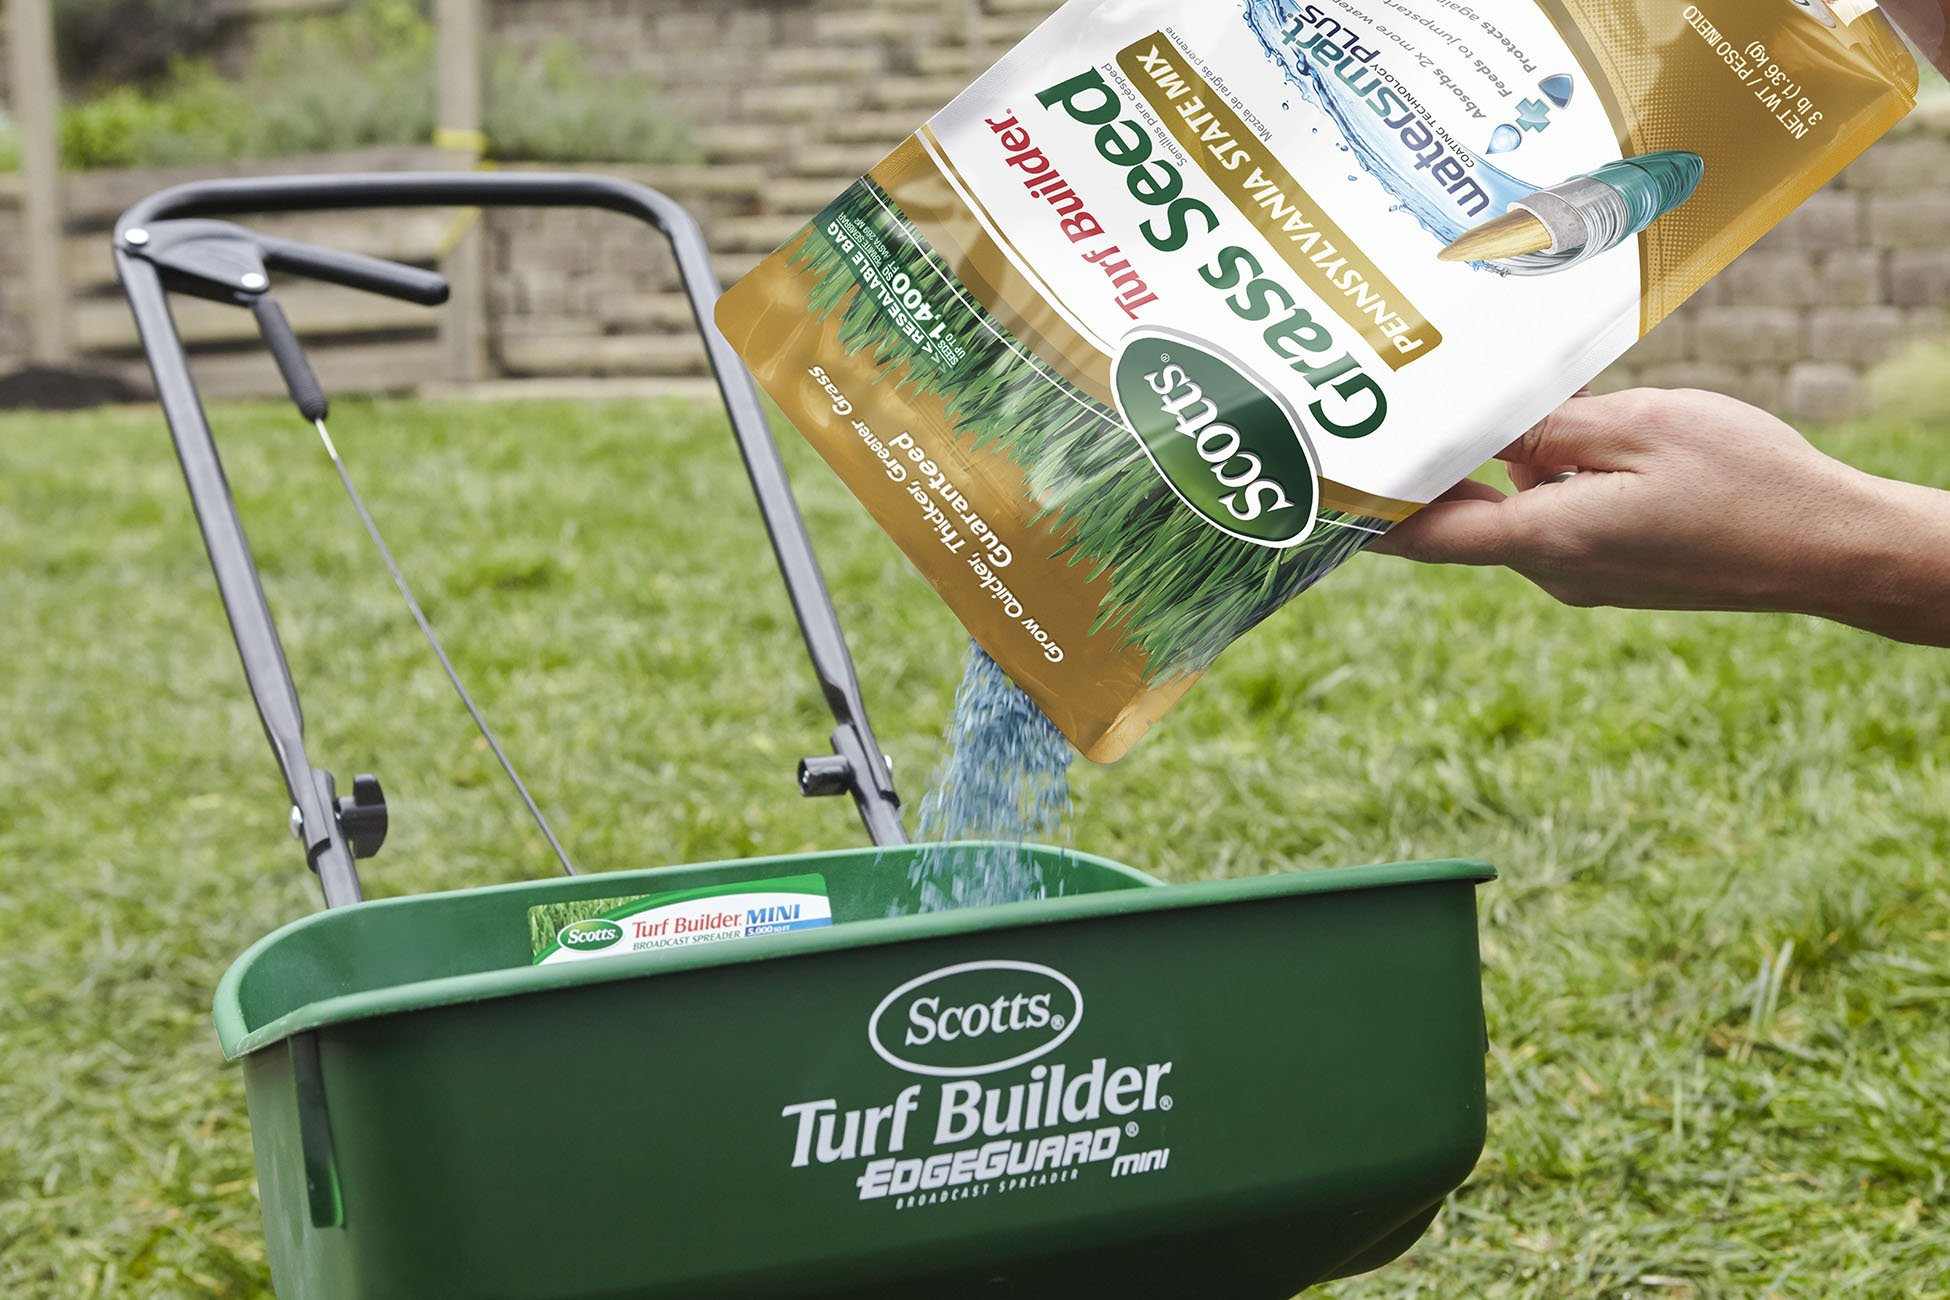 Scotts Turf Builder Grass Seed - Pennsylvania State Mix, 3-Pound  (Not Sold in CA, LA)